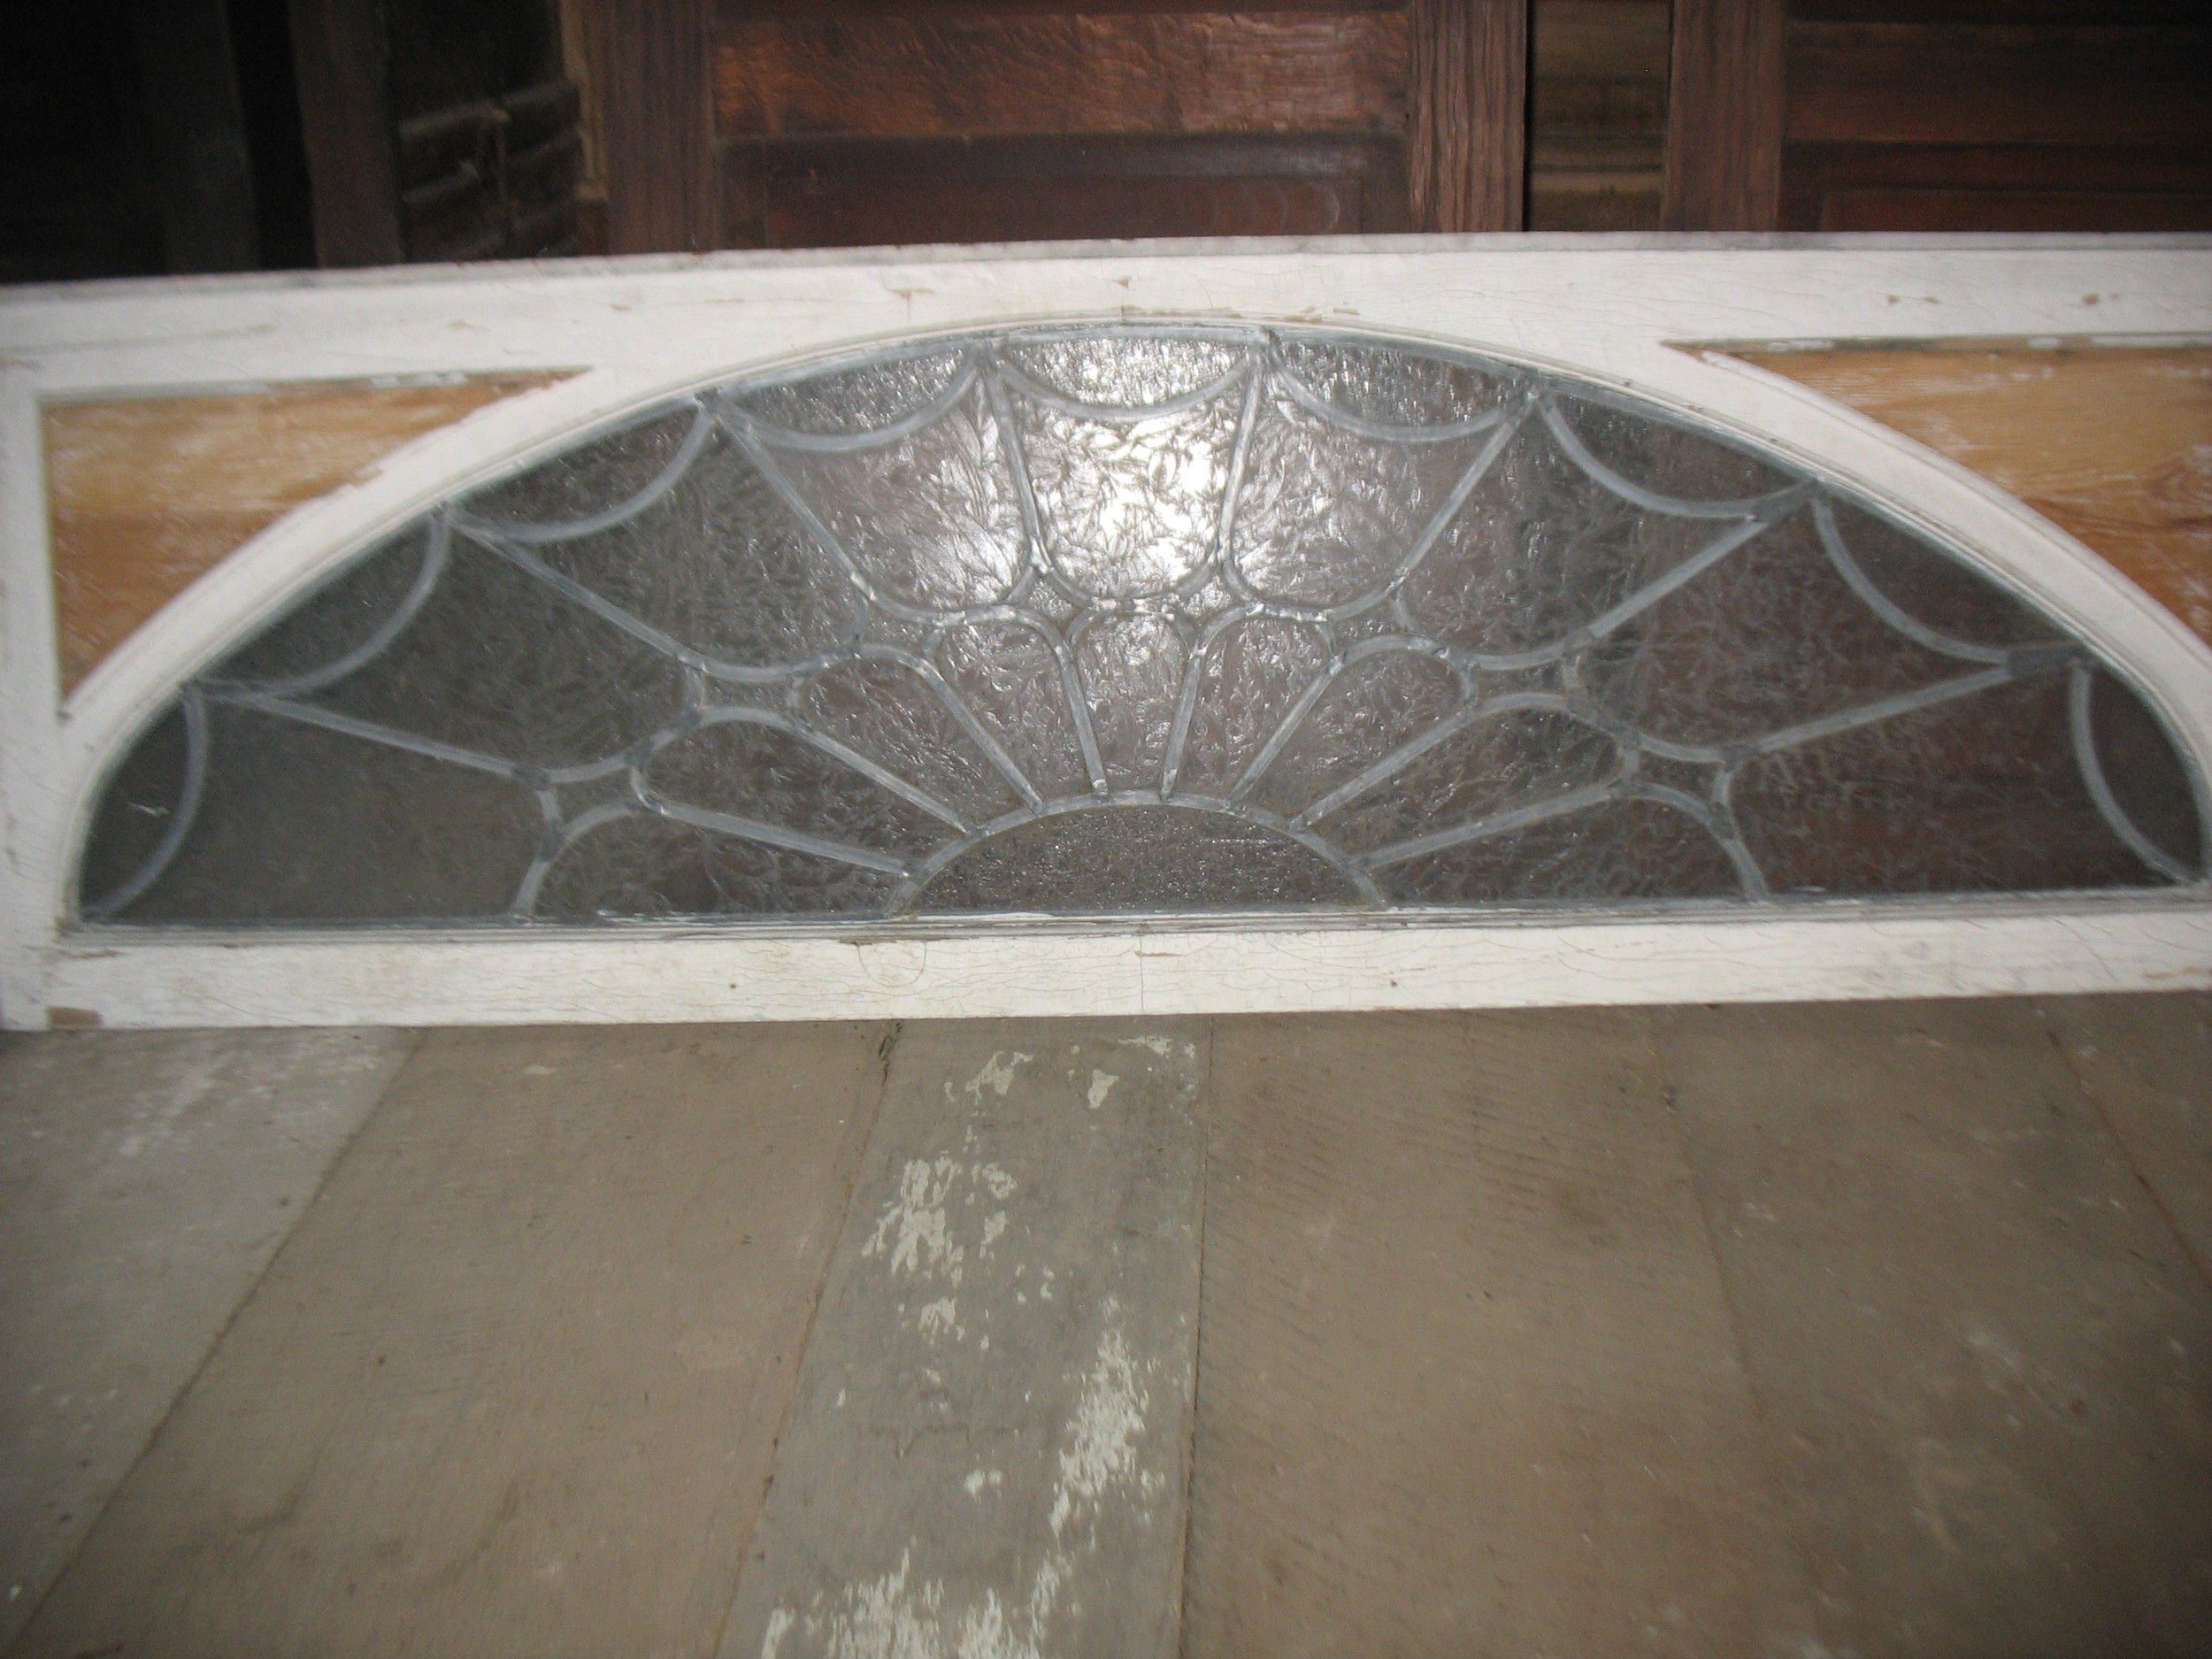 """Beautiful Transom with wonderful wide leading and Italian Crinkle Glass not to be found anymore. It measures 5' 4"""" long X 20 inches wide X 1 1/2 inch thick. Perfect condition. Our of an 1880's house in Russellville, Ky.    Price: UPON REQUEST"""